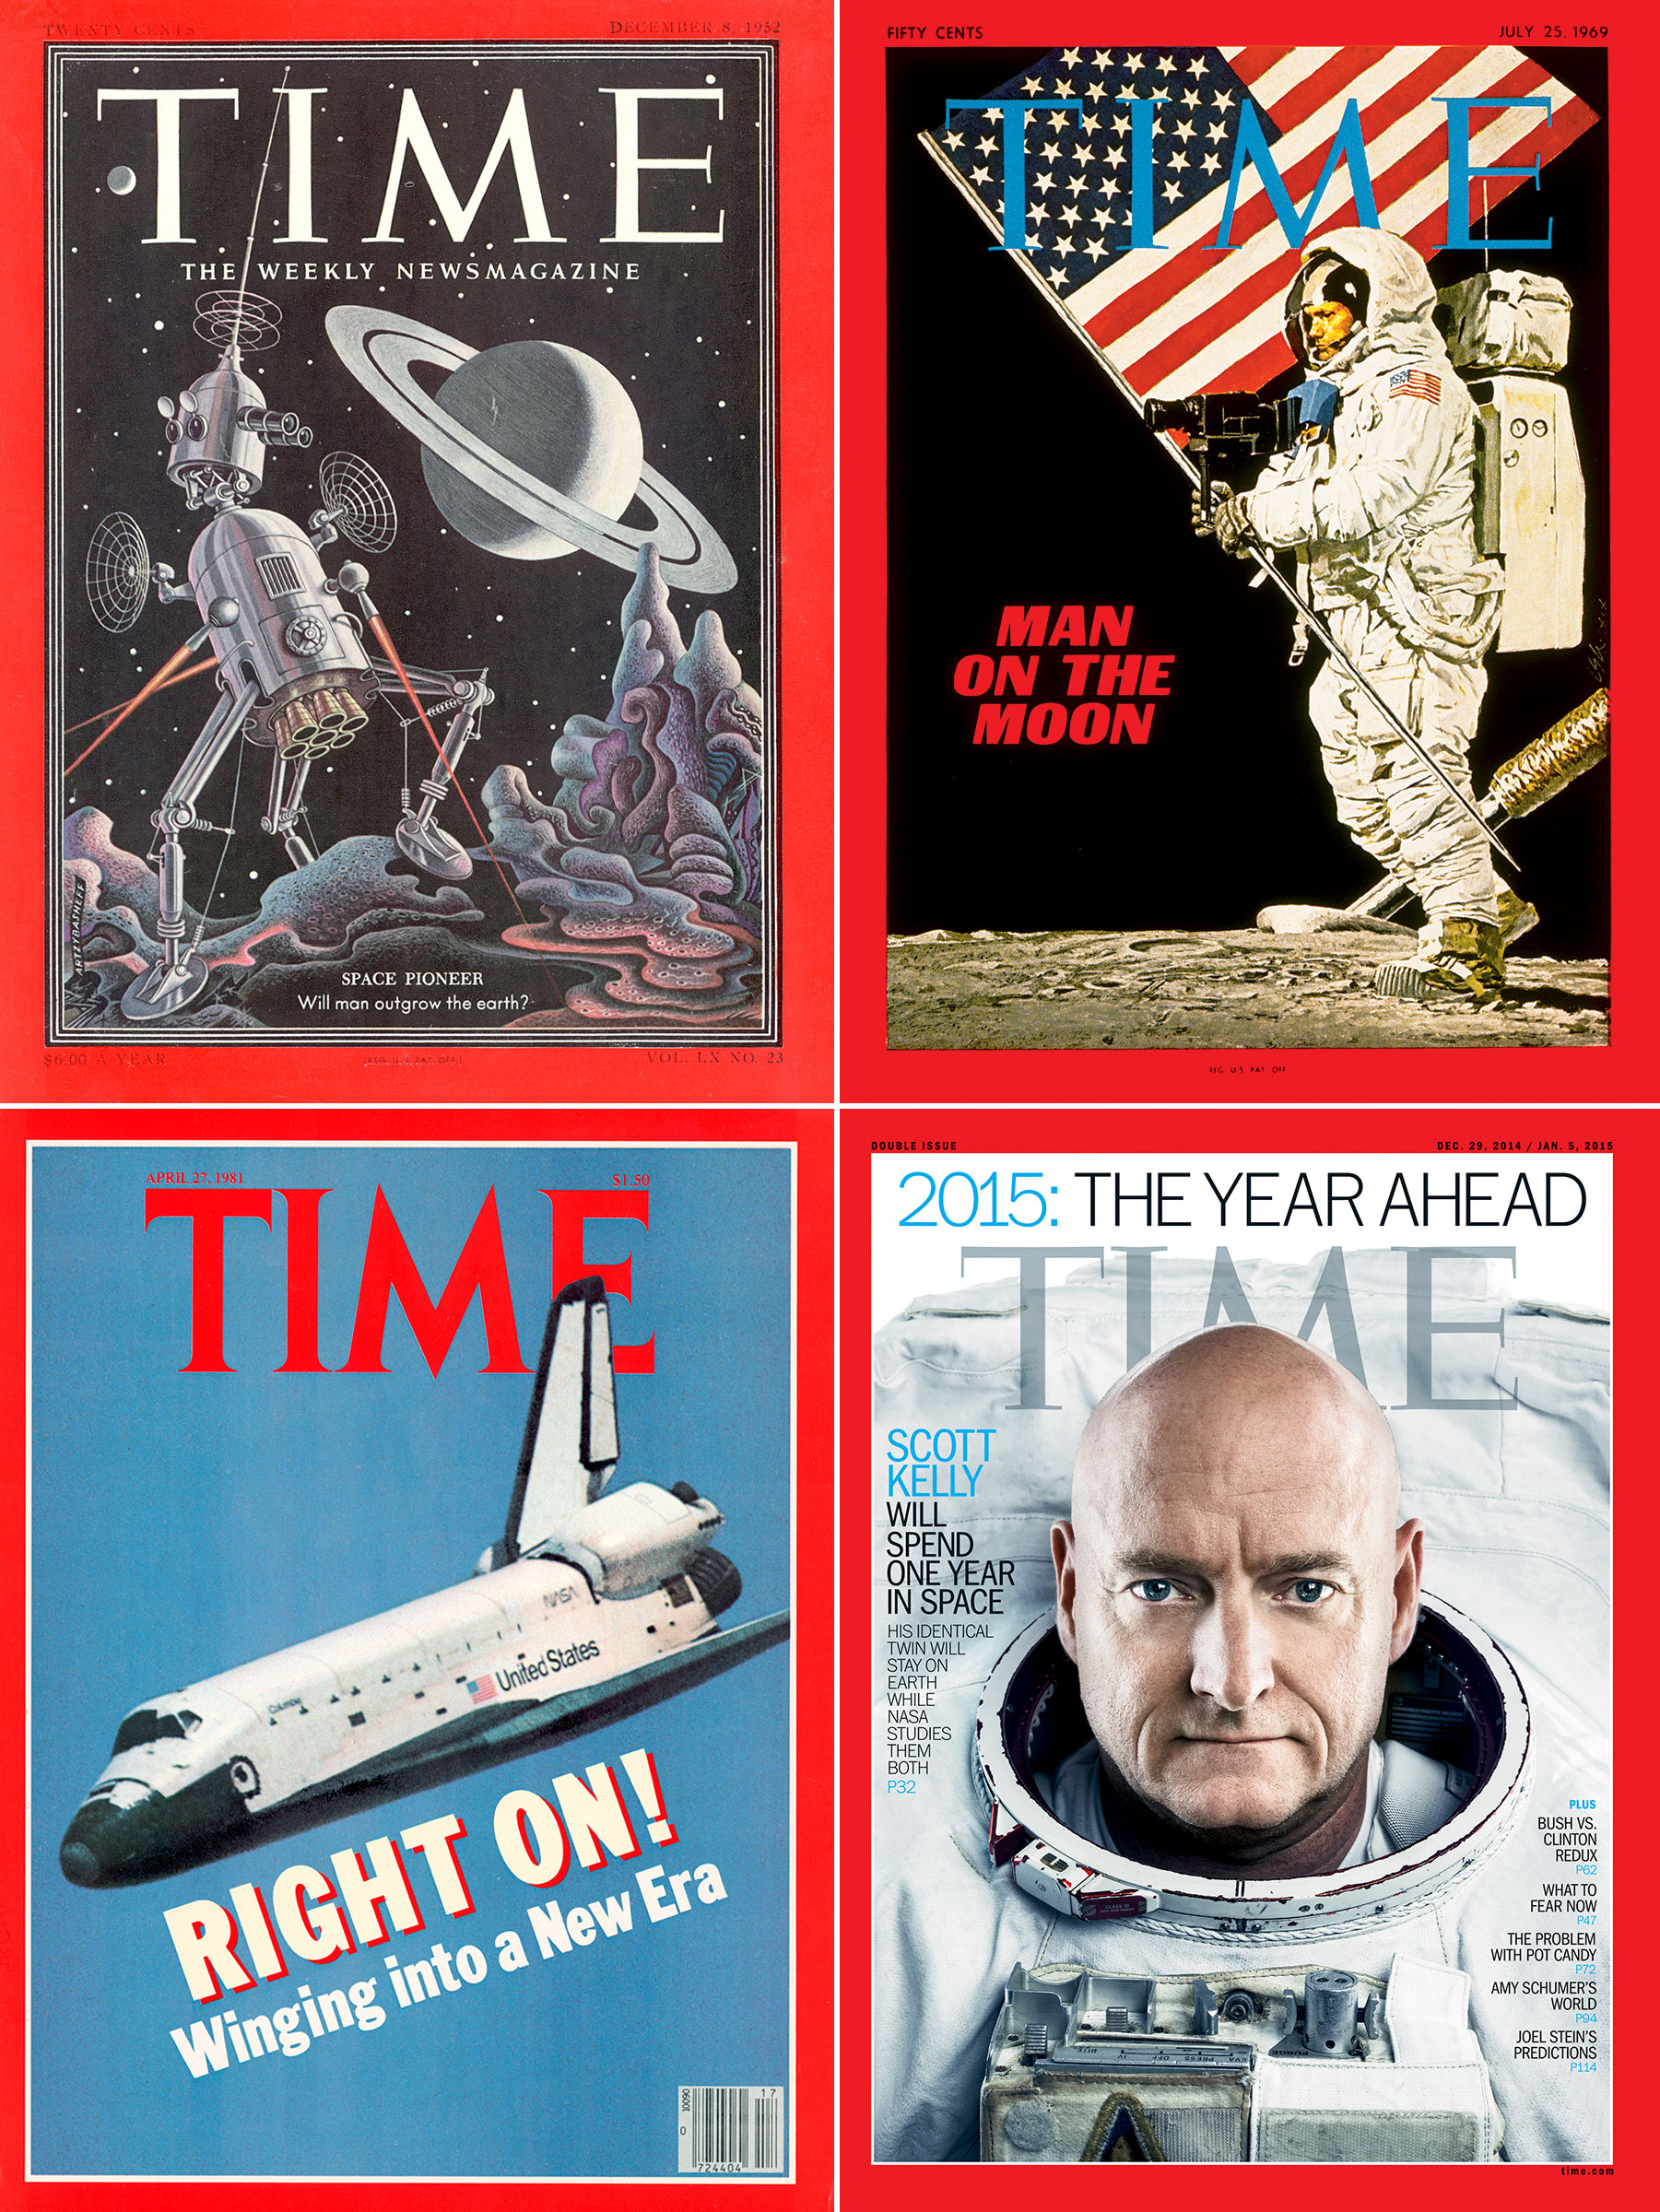 Why the Subject of Space Best Reflects TIME's Journey | Time |Space Magazine